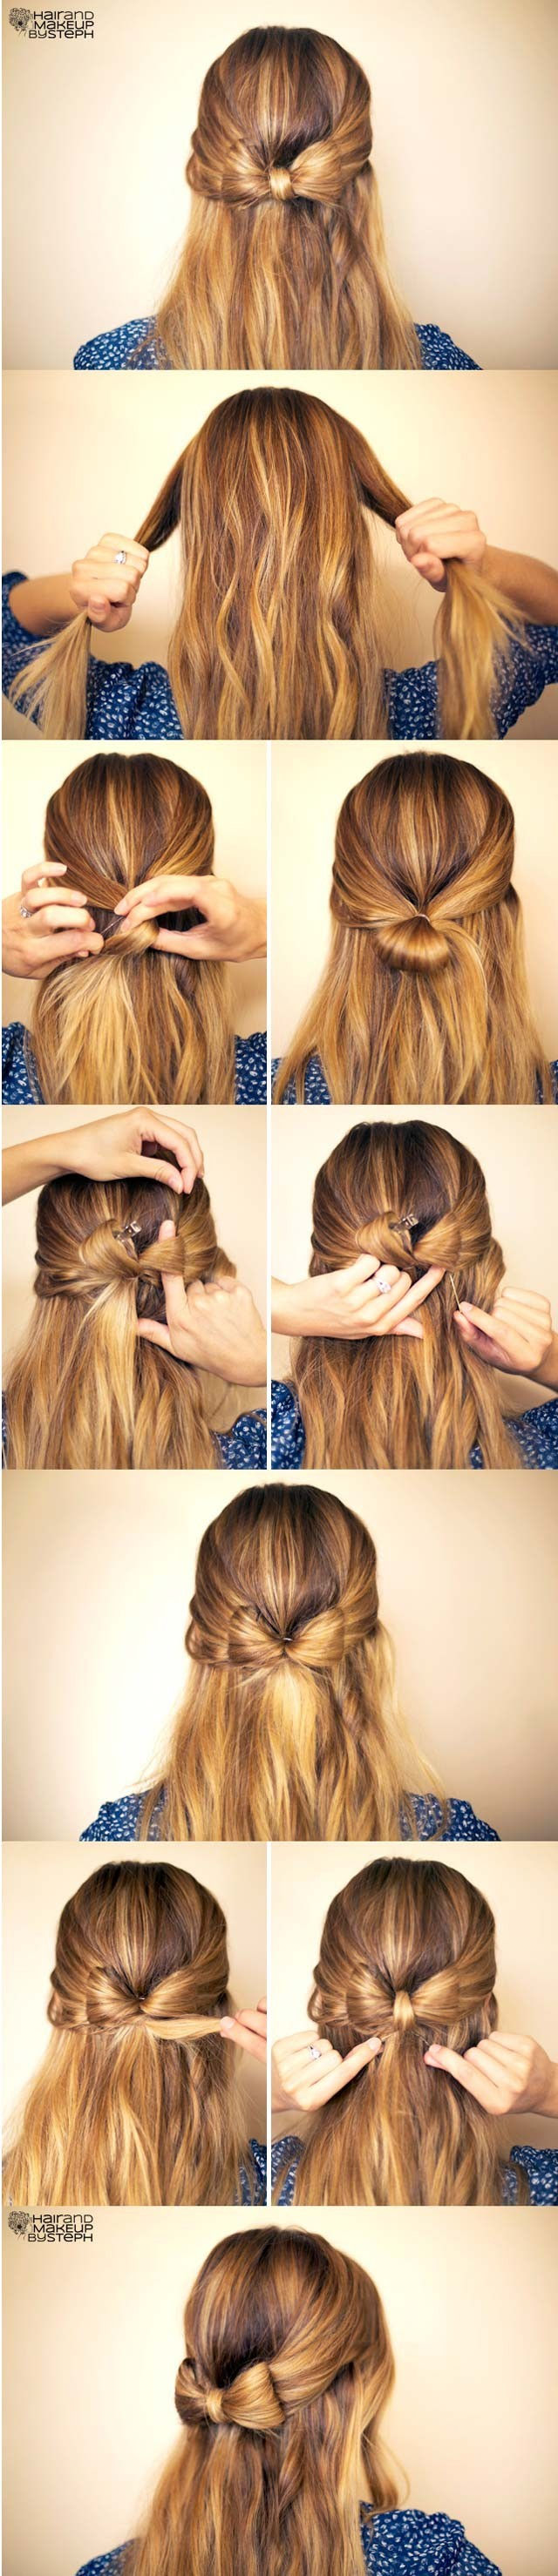 15 cute hairstyles step by step hairstyles for long hair popular cute easy hairstyle hair bow tutorial baditri Image collections